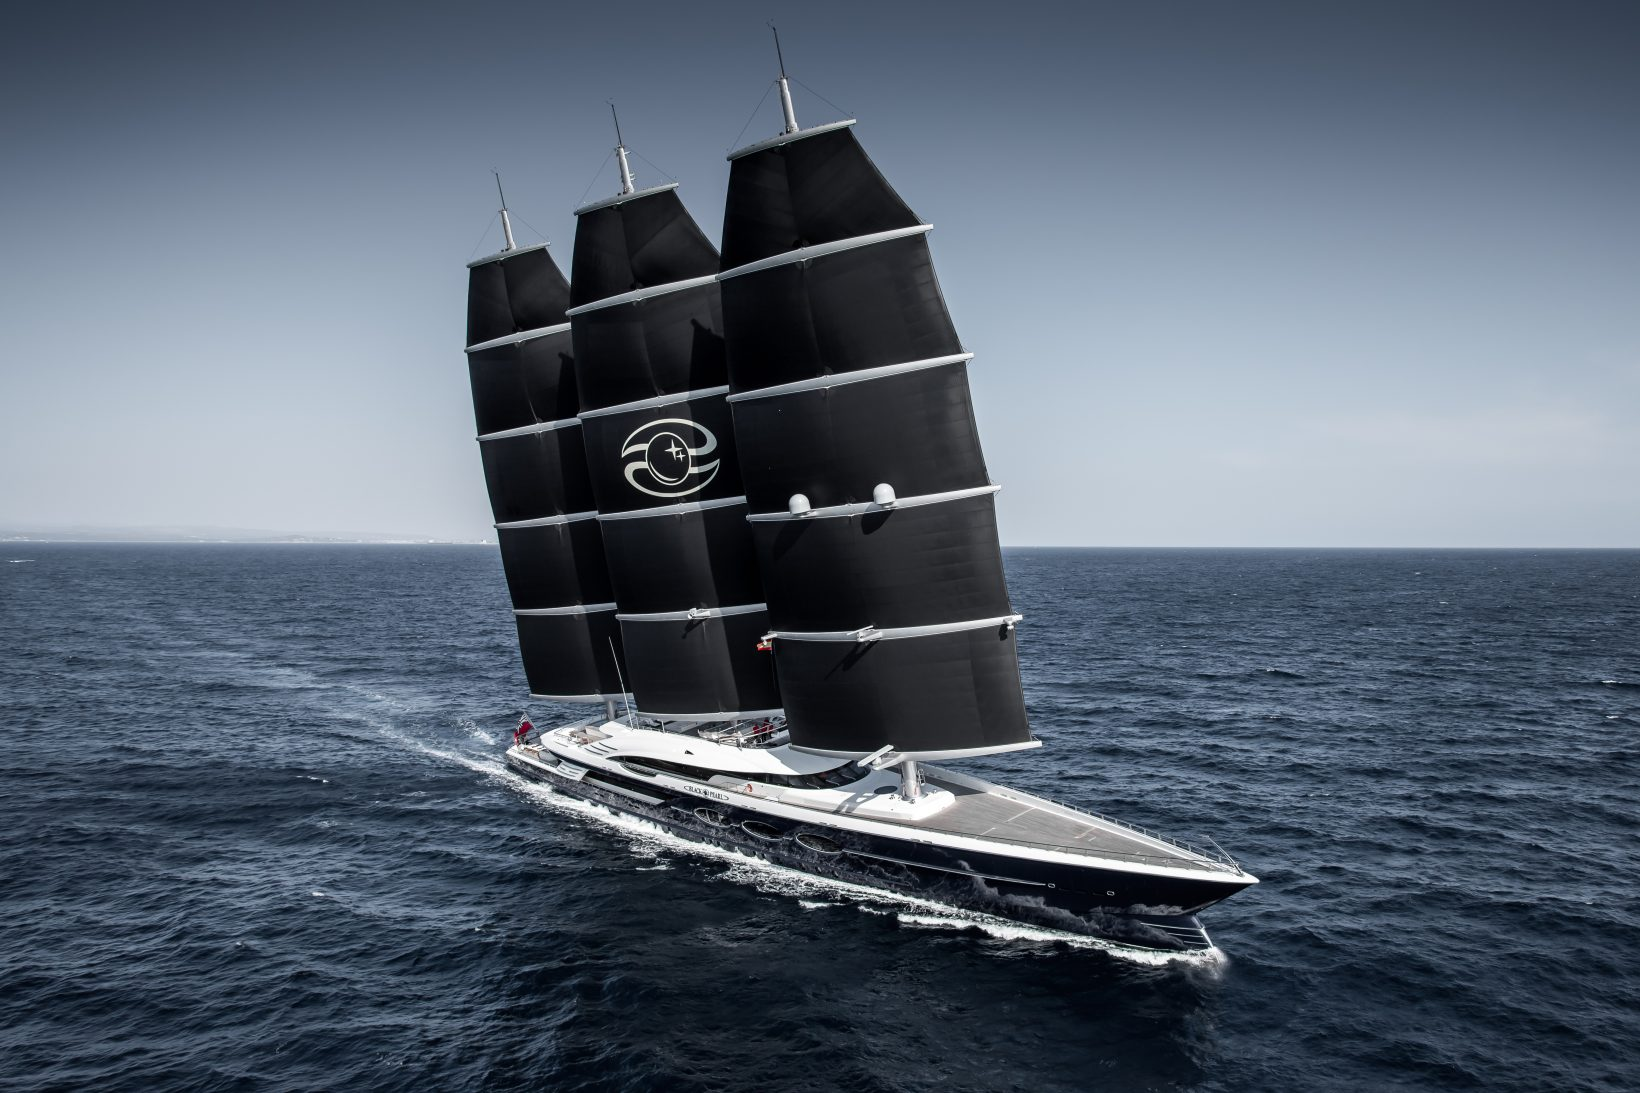 The Rise of Sustainable Yachting